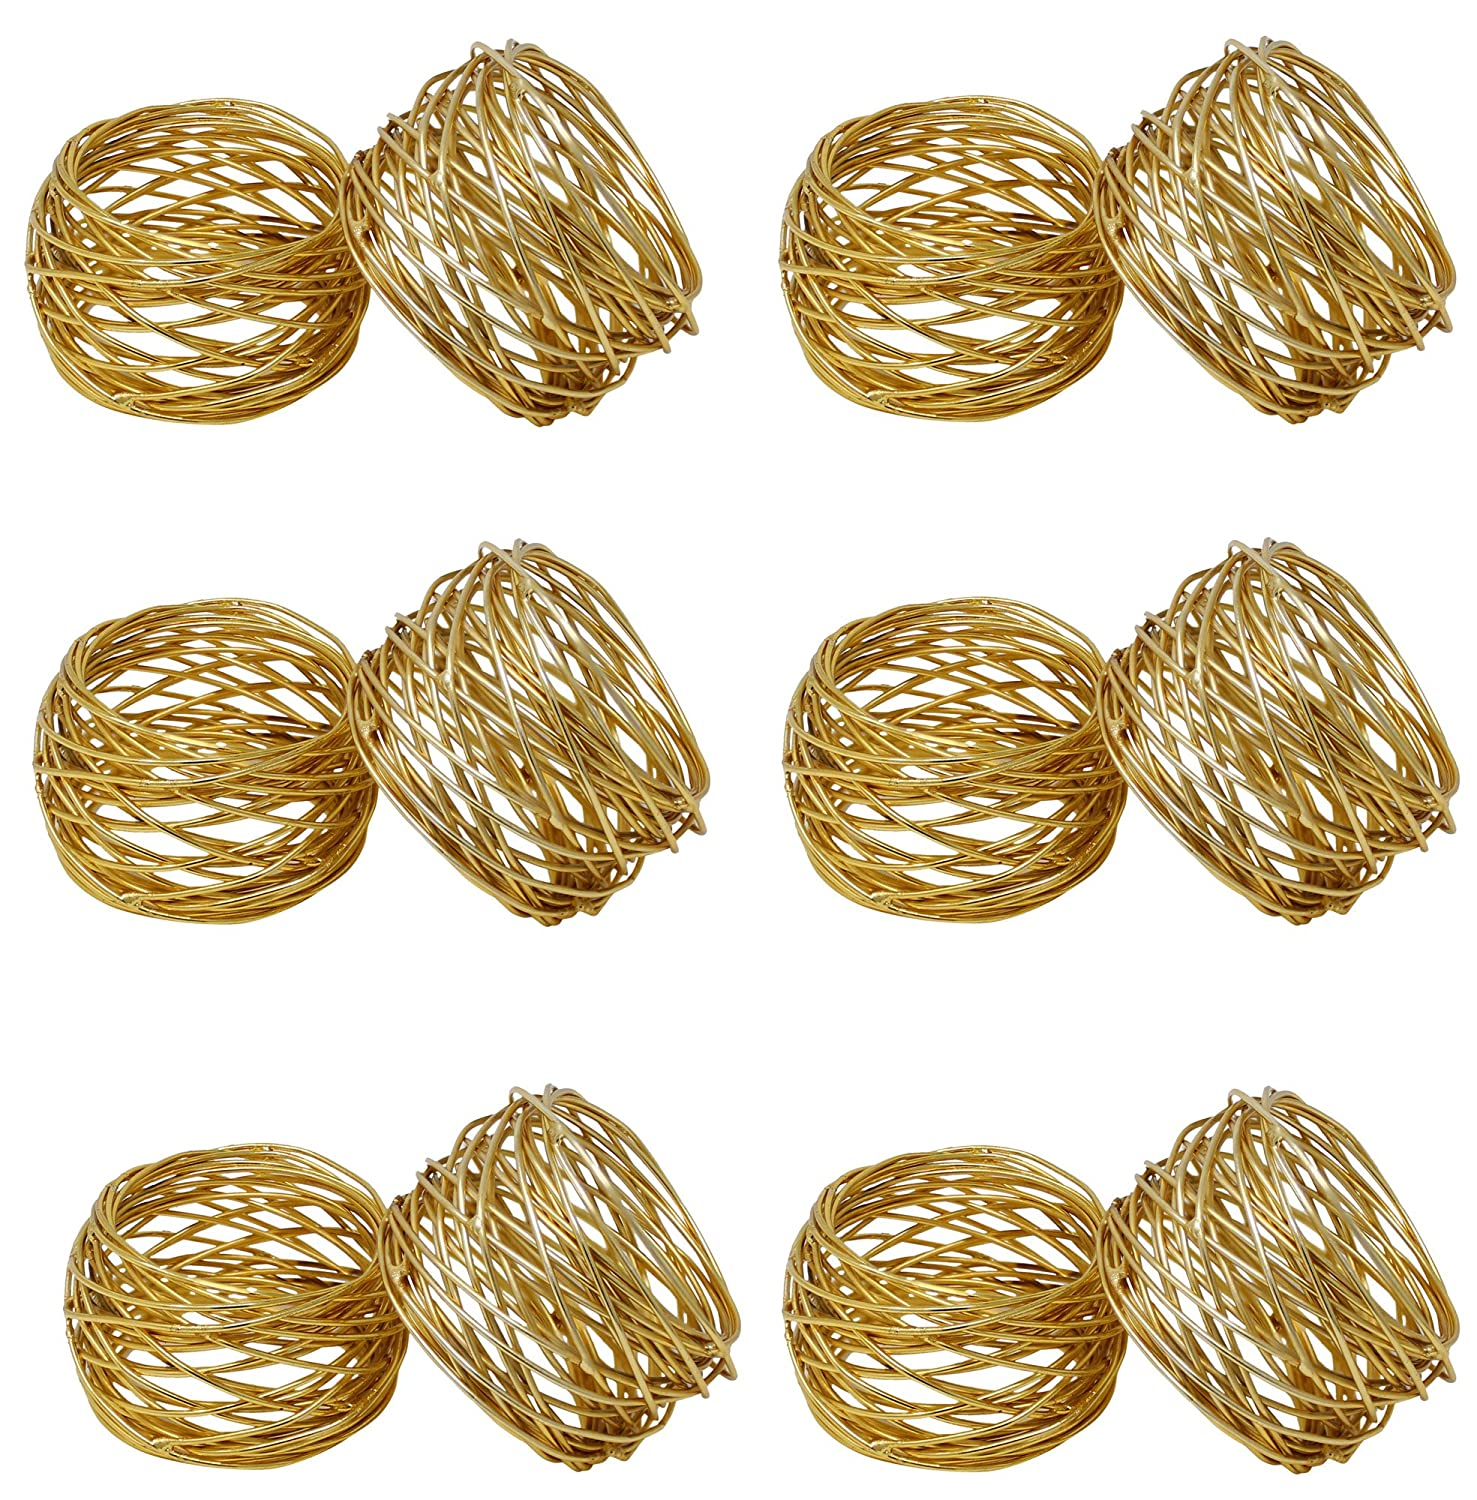 SKAVIJ Round Mesh Gold Napkin Rings Set of 12 Round for Weddings Dinner Parties or Every Day Use Godinger Silver Art COMINHKPR95660